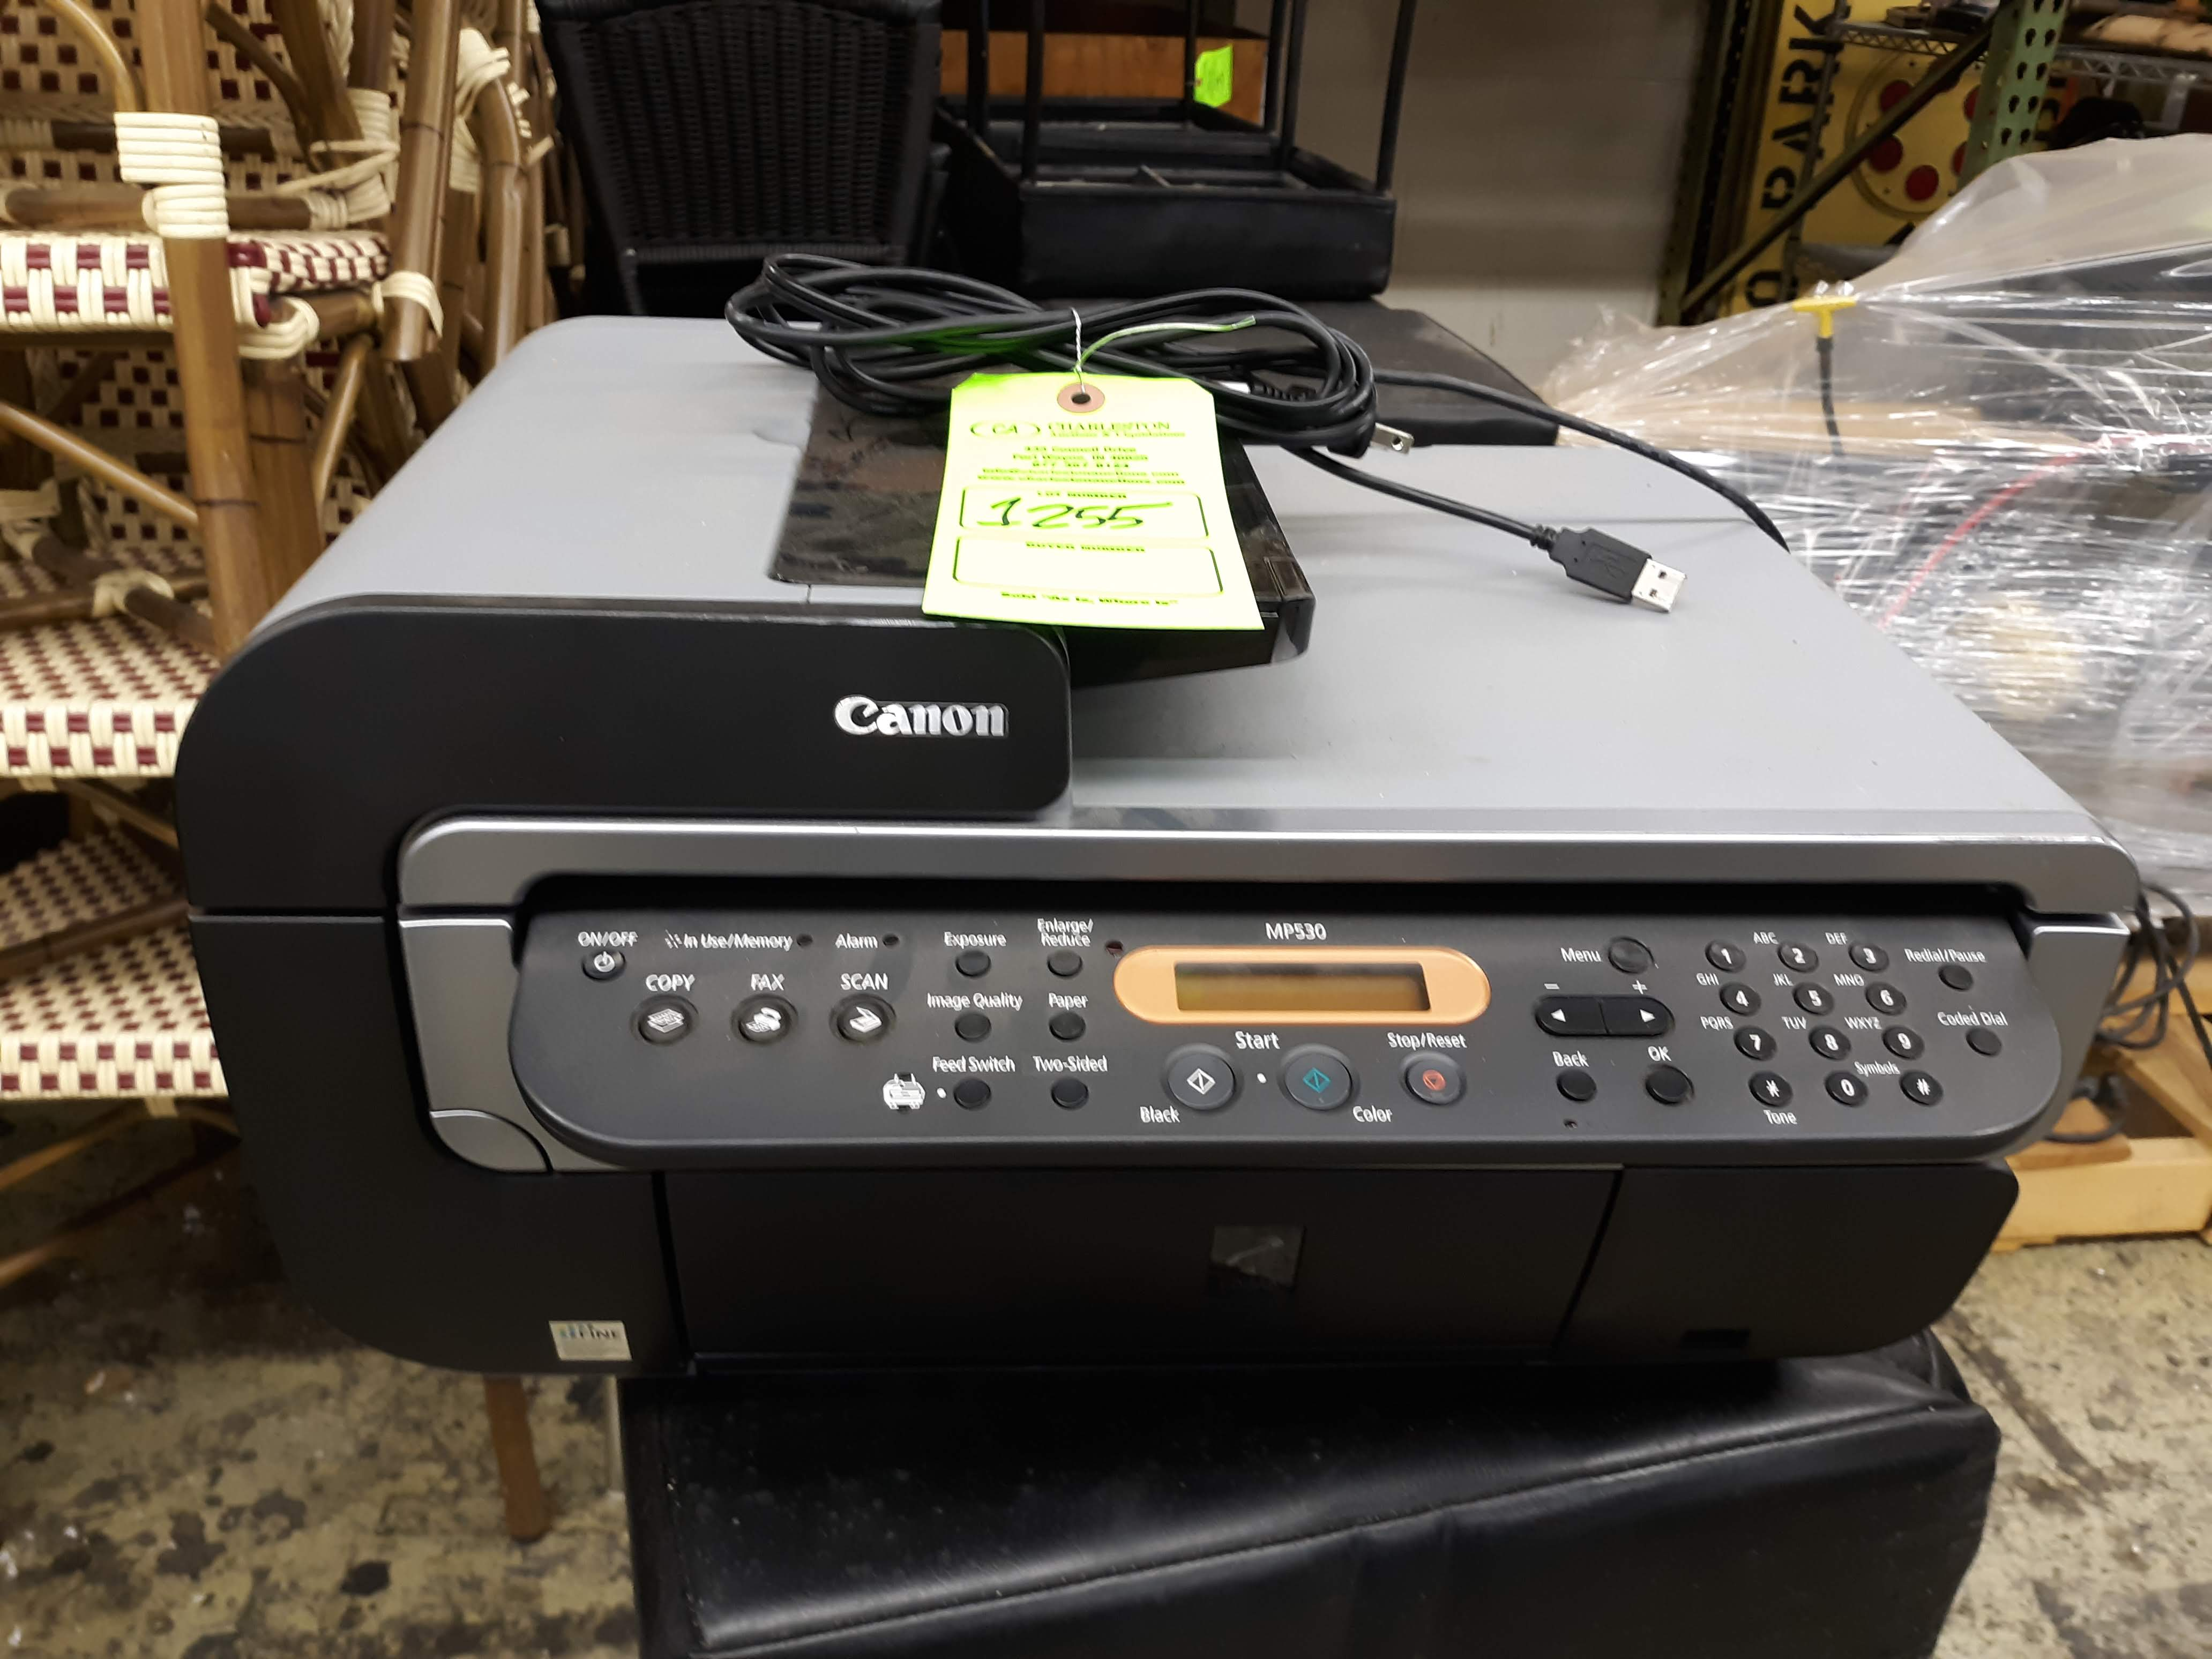 CANON MP530 ALL-IN-ONE PRINTER/FAX MACHINE (LOCATED AT: 433 COUNCIL DRIVE, FORT WAYNE, IN 46825)